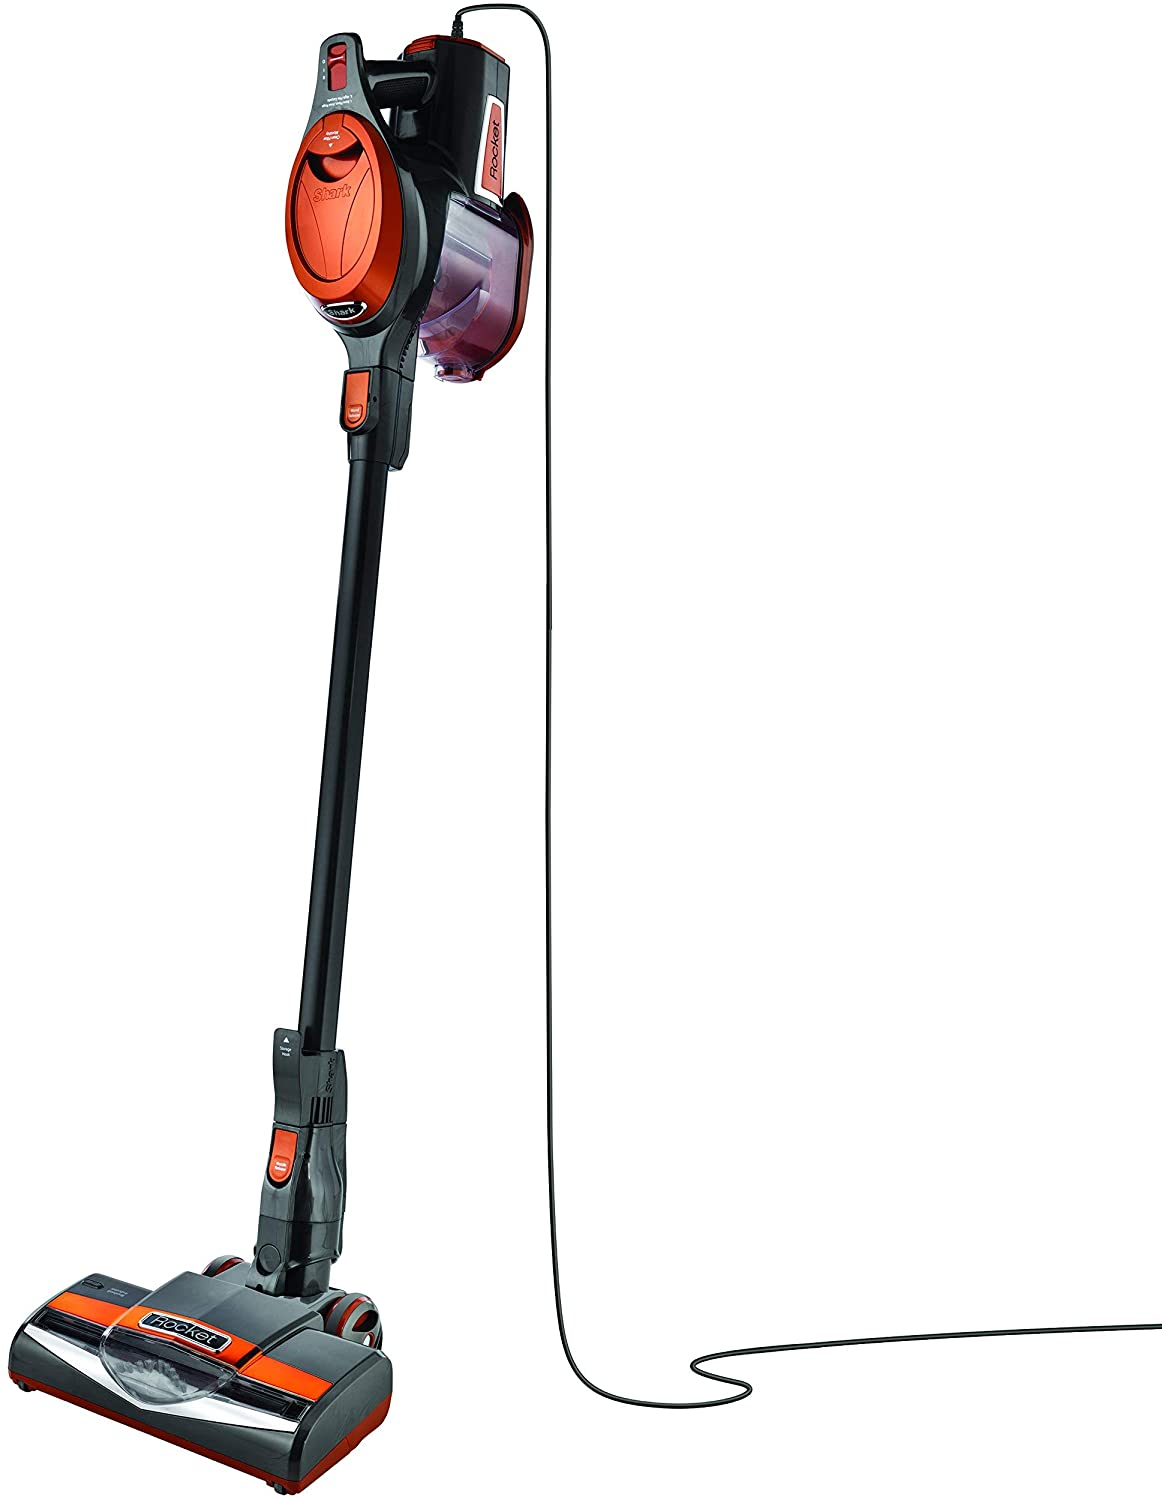 SharkNinja HV301 Rocket Stick Vacuum, Orange and Gray - Renewed